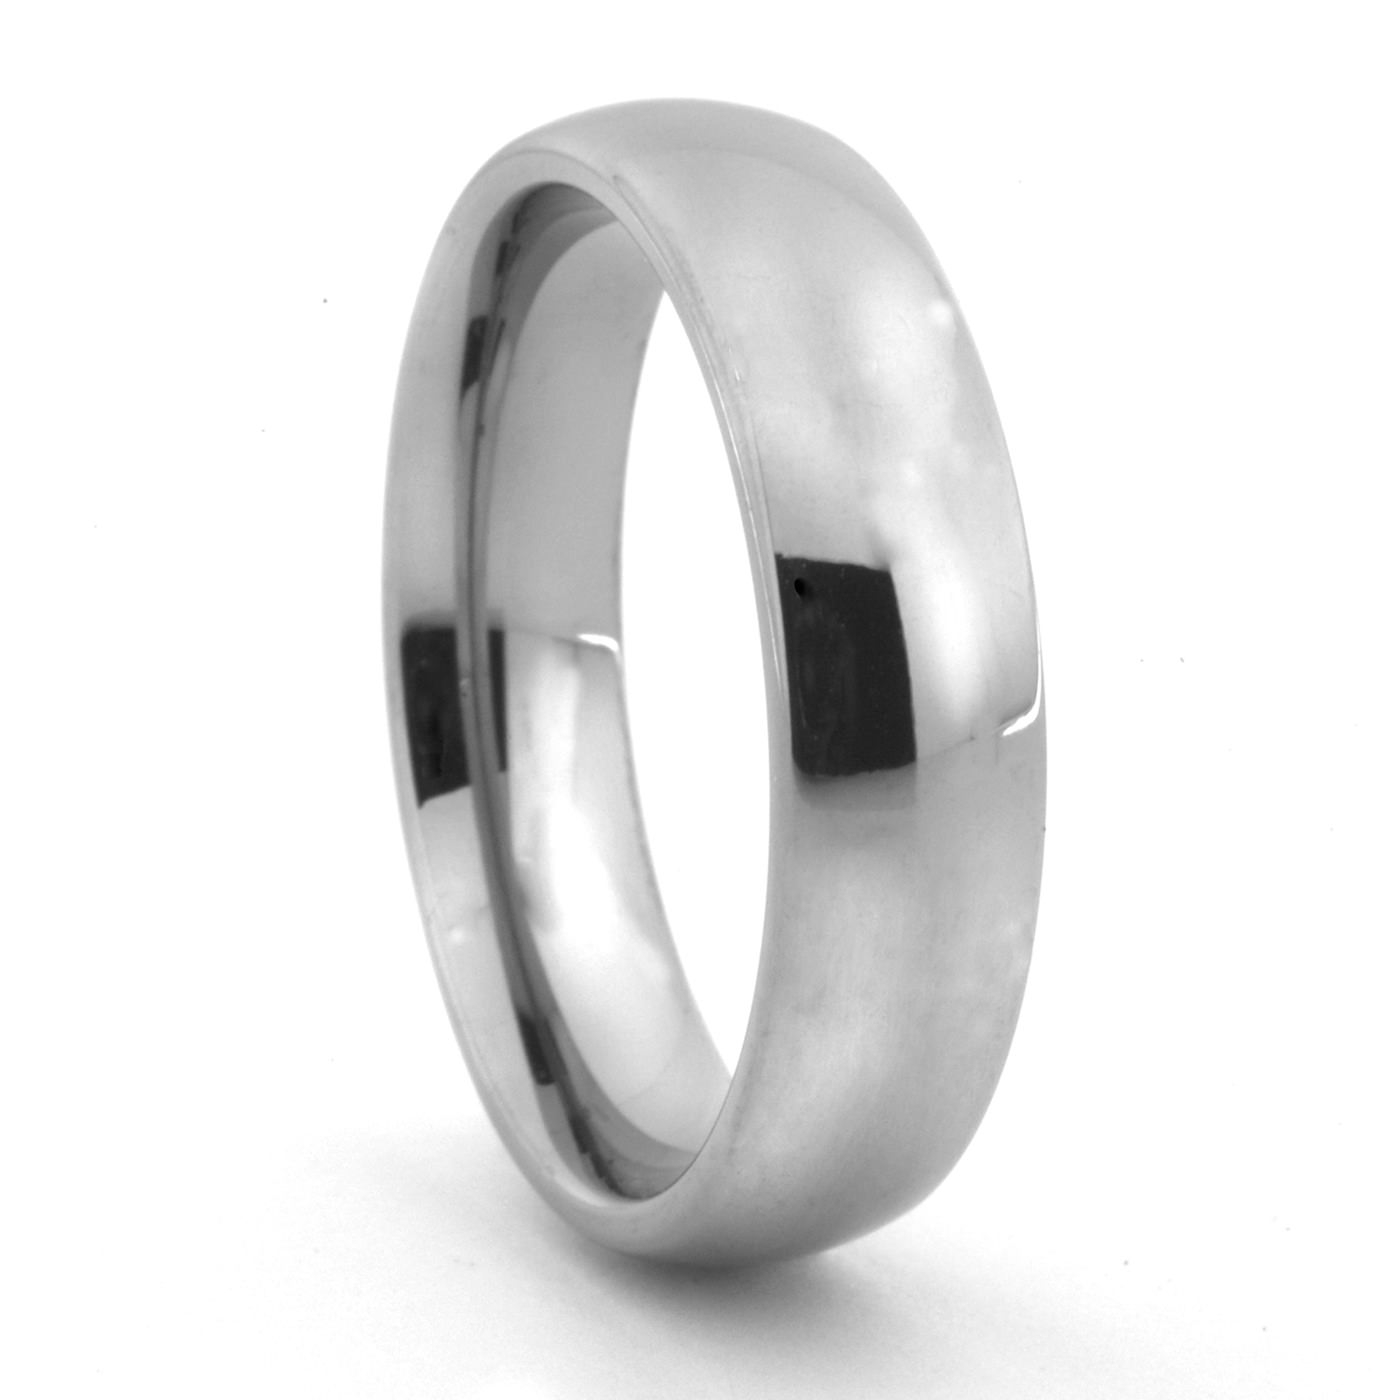 Classic Titanium Wedding Band – 6Mm Men's Titanium Band Regarding Titanium Wedding Bands (Gallery 12 of 15)